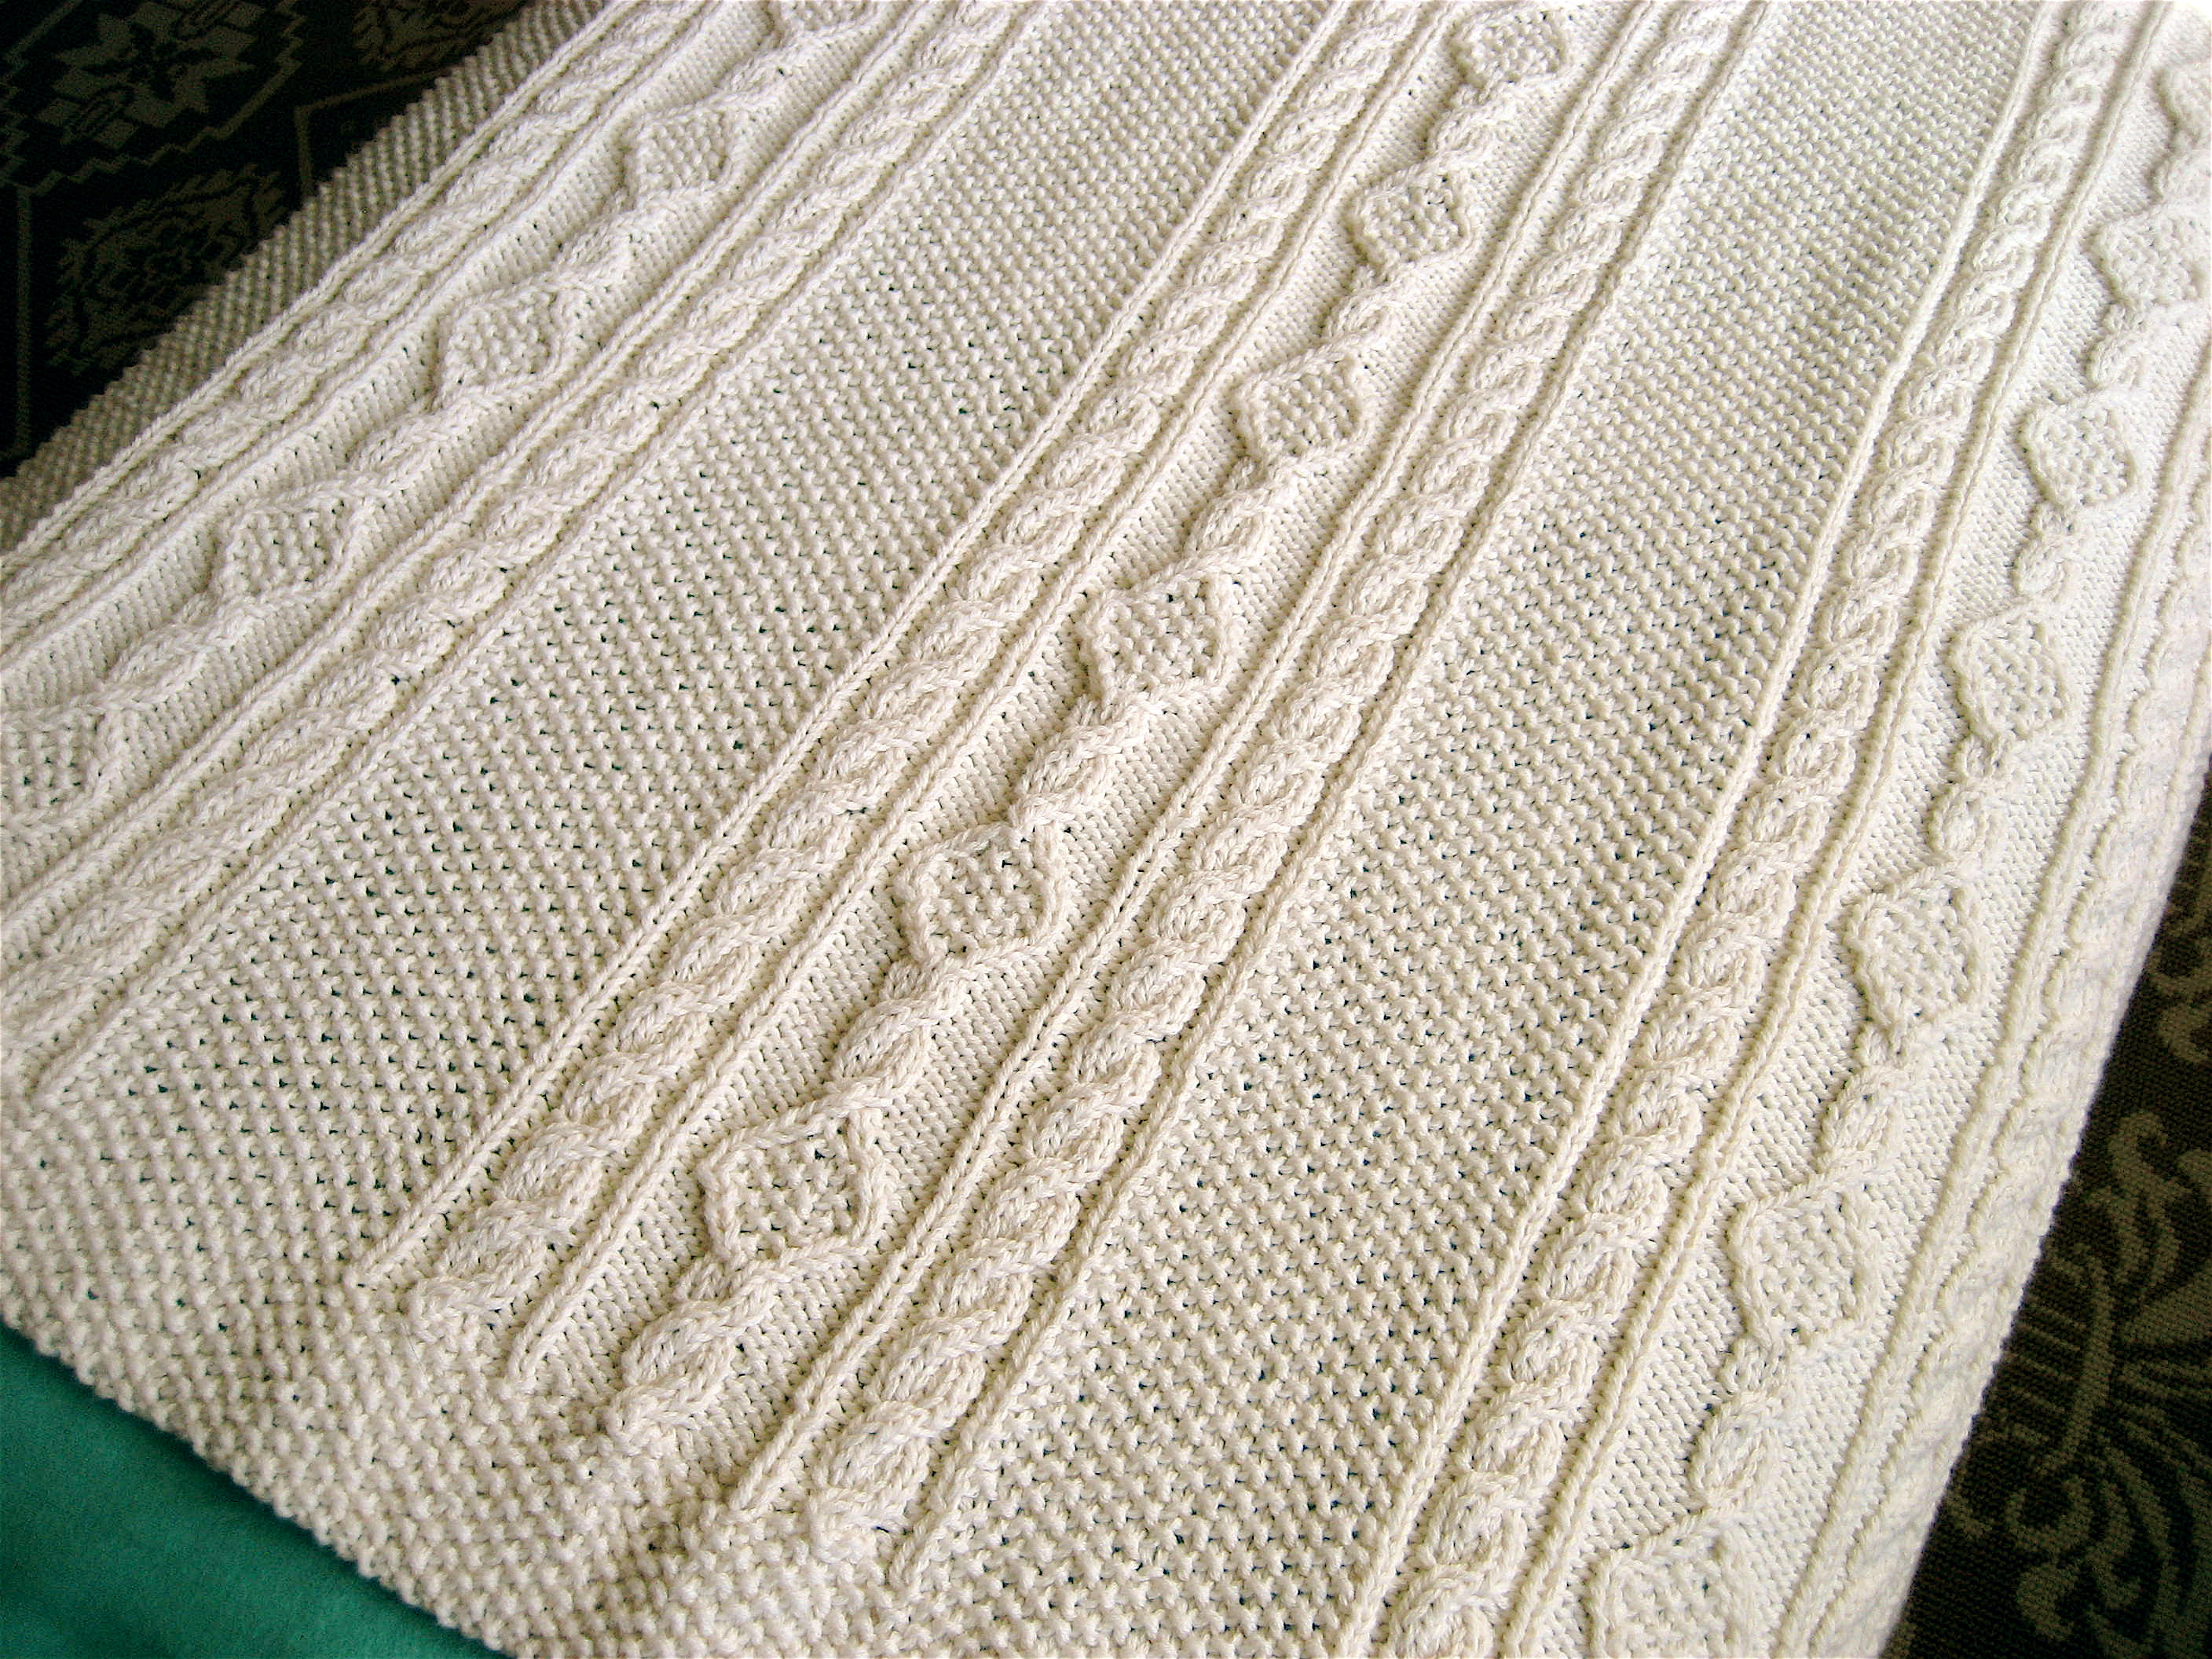 Baby Afghan Knitting Patterns Inspirational Irish Knit Baby Blanket Of Superb 40 Images Baby Afghan Knitting Patterns